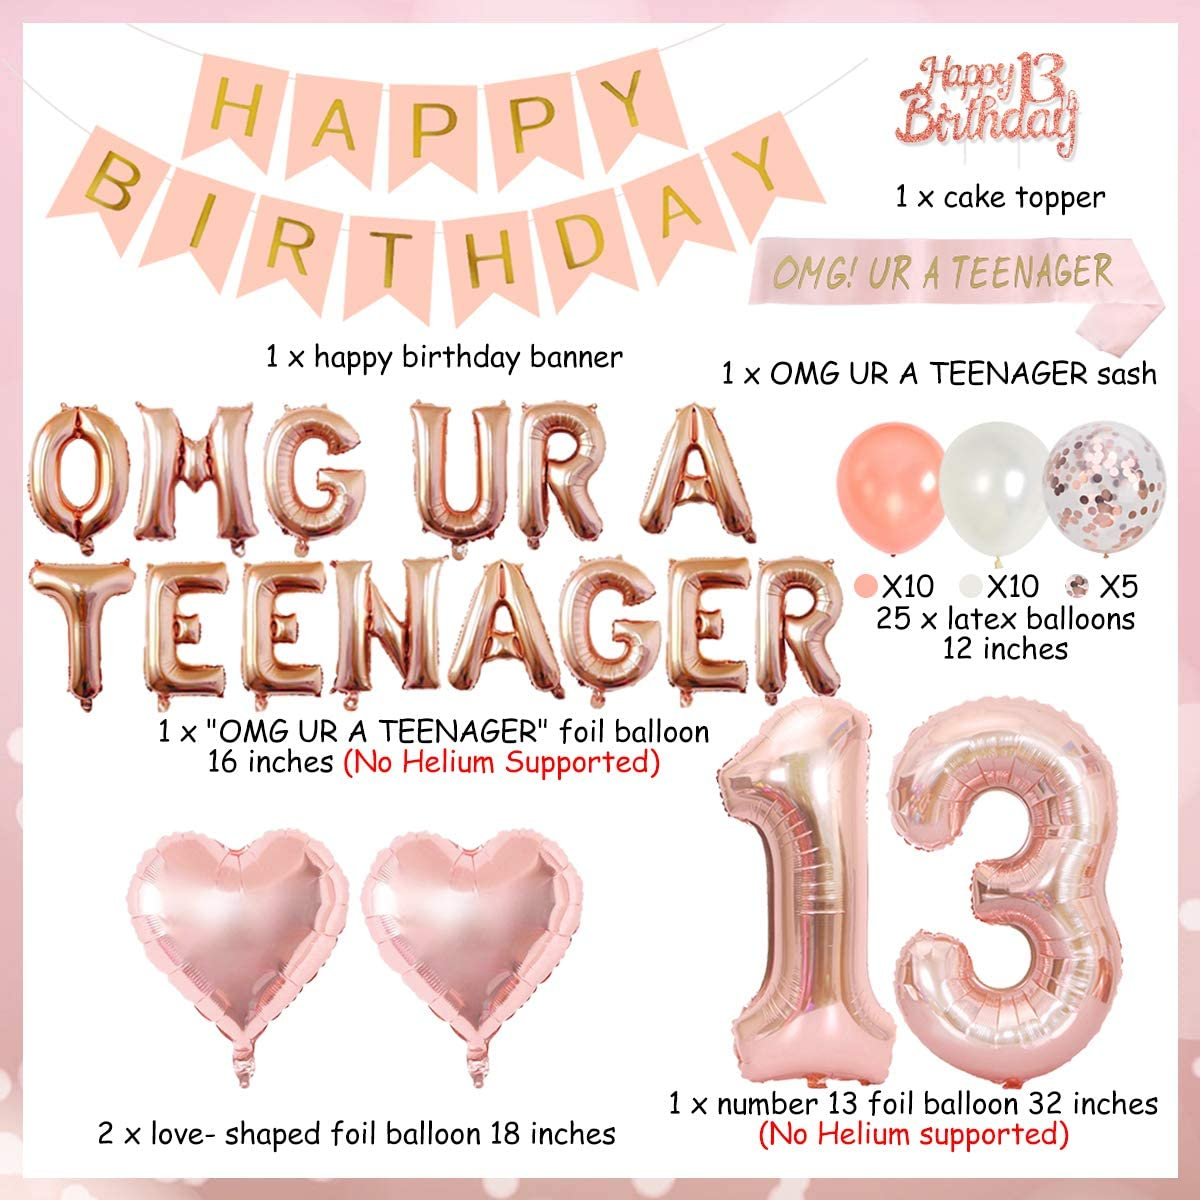 Official Teenager Birthday Party Decoration 13th Birthday Party Decorations for Girls with Rose Gold Omg Ur A Teenager Balloons Banner Sash Tinsel Cake Topper